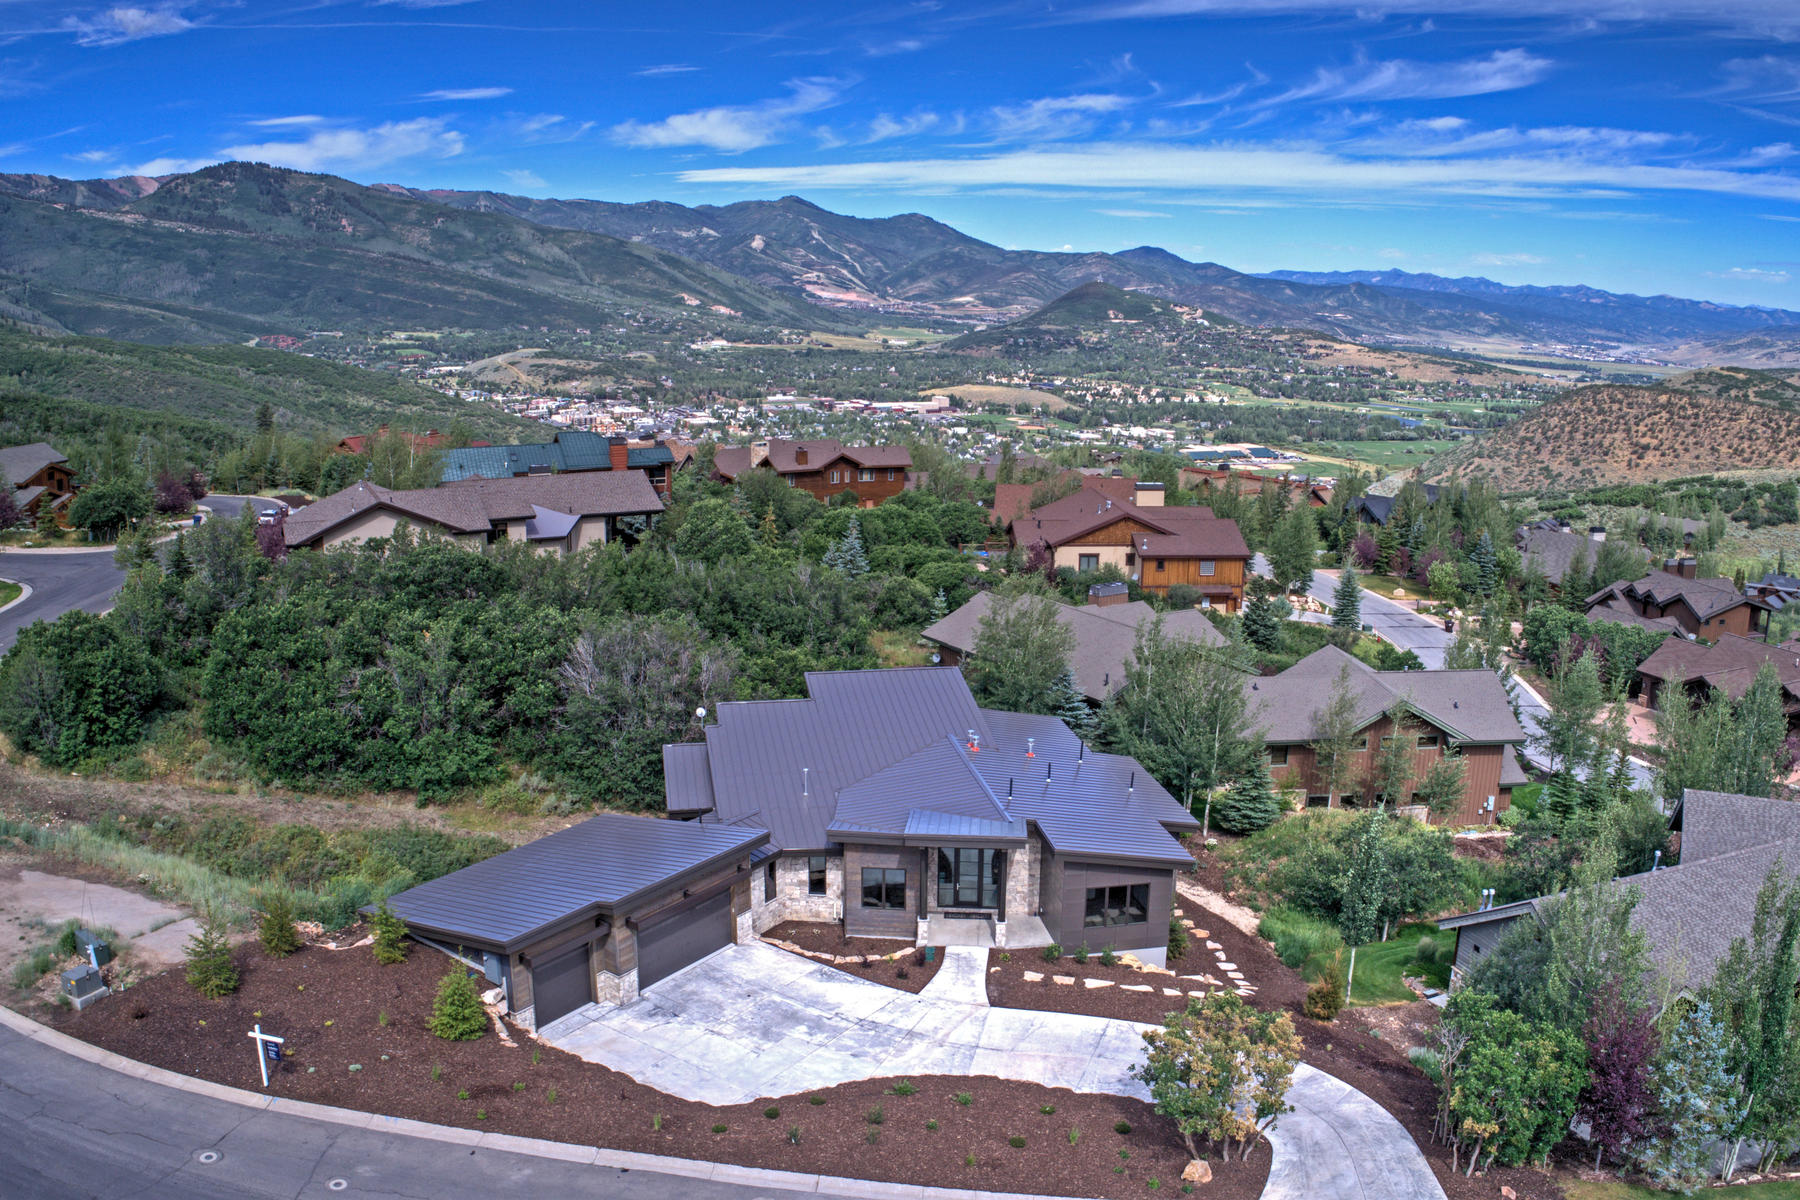 一戸建て のために 売買 アット New Contemporary Construction in Royal Oaks at Deer Valley 3775 Sun Ridge Dr Park City, ユタ, 84060 アメリカ合衆国